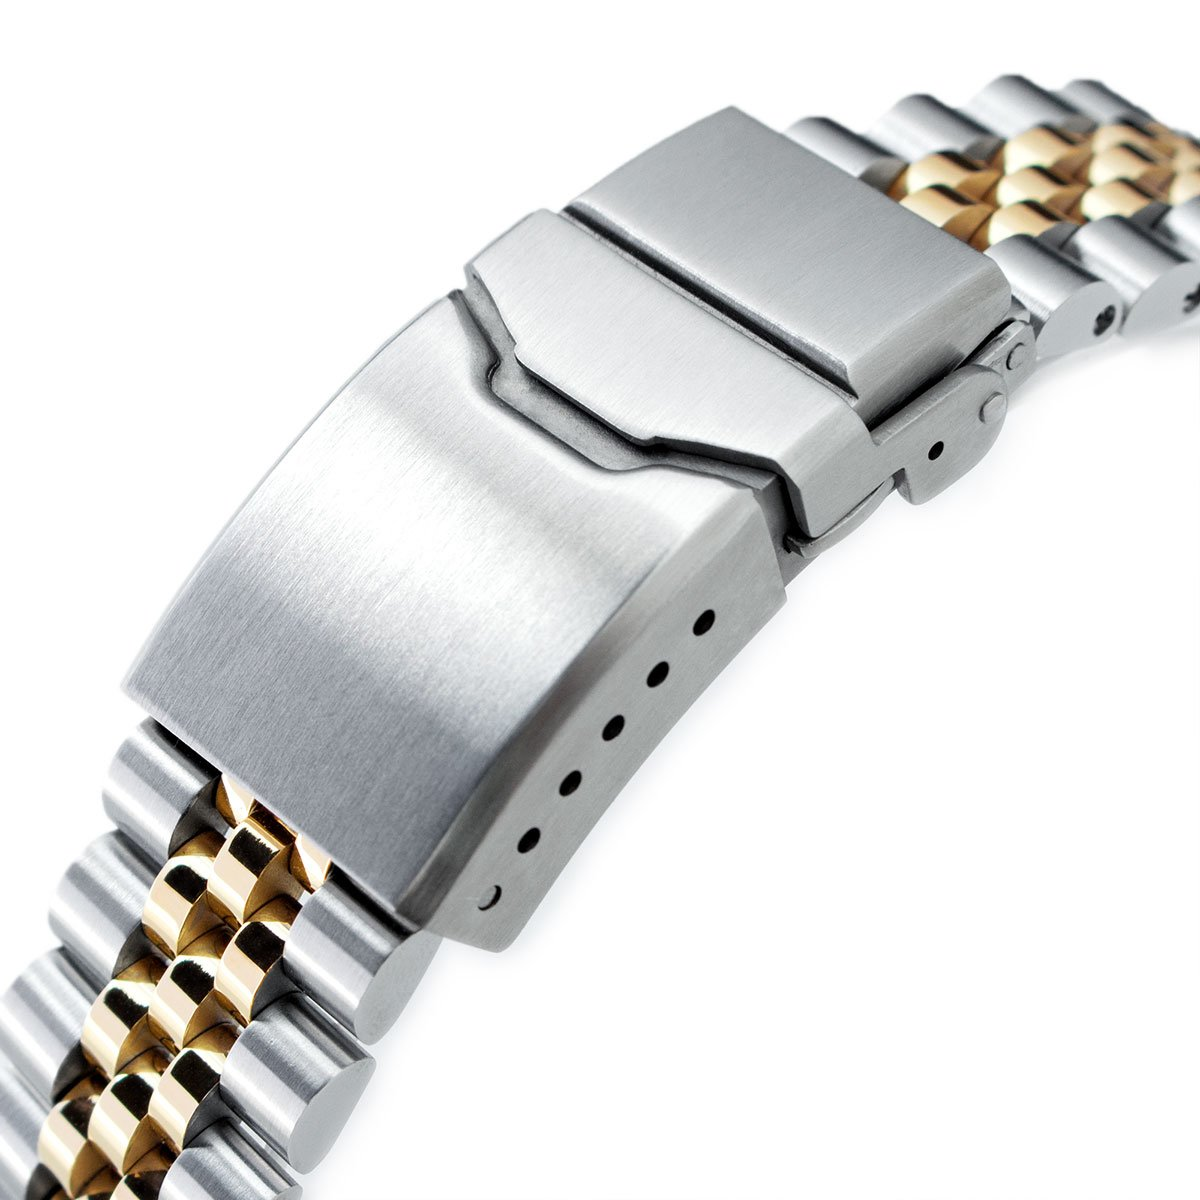 22mm Super 3D Jubilee Watch Bracelet for Seiko New Turtles SRP775, 2-Tone, Button Chamfer by Seiko Replacement by MiLTAT (Image #3)